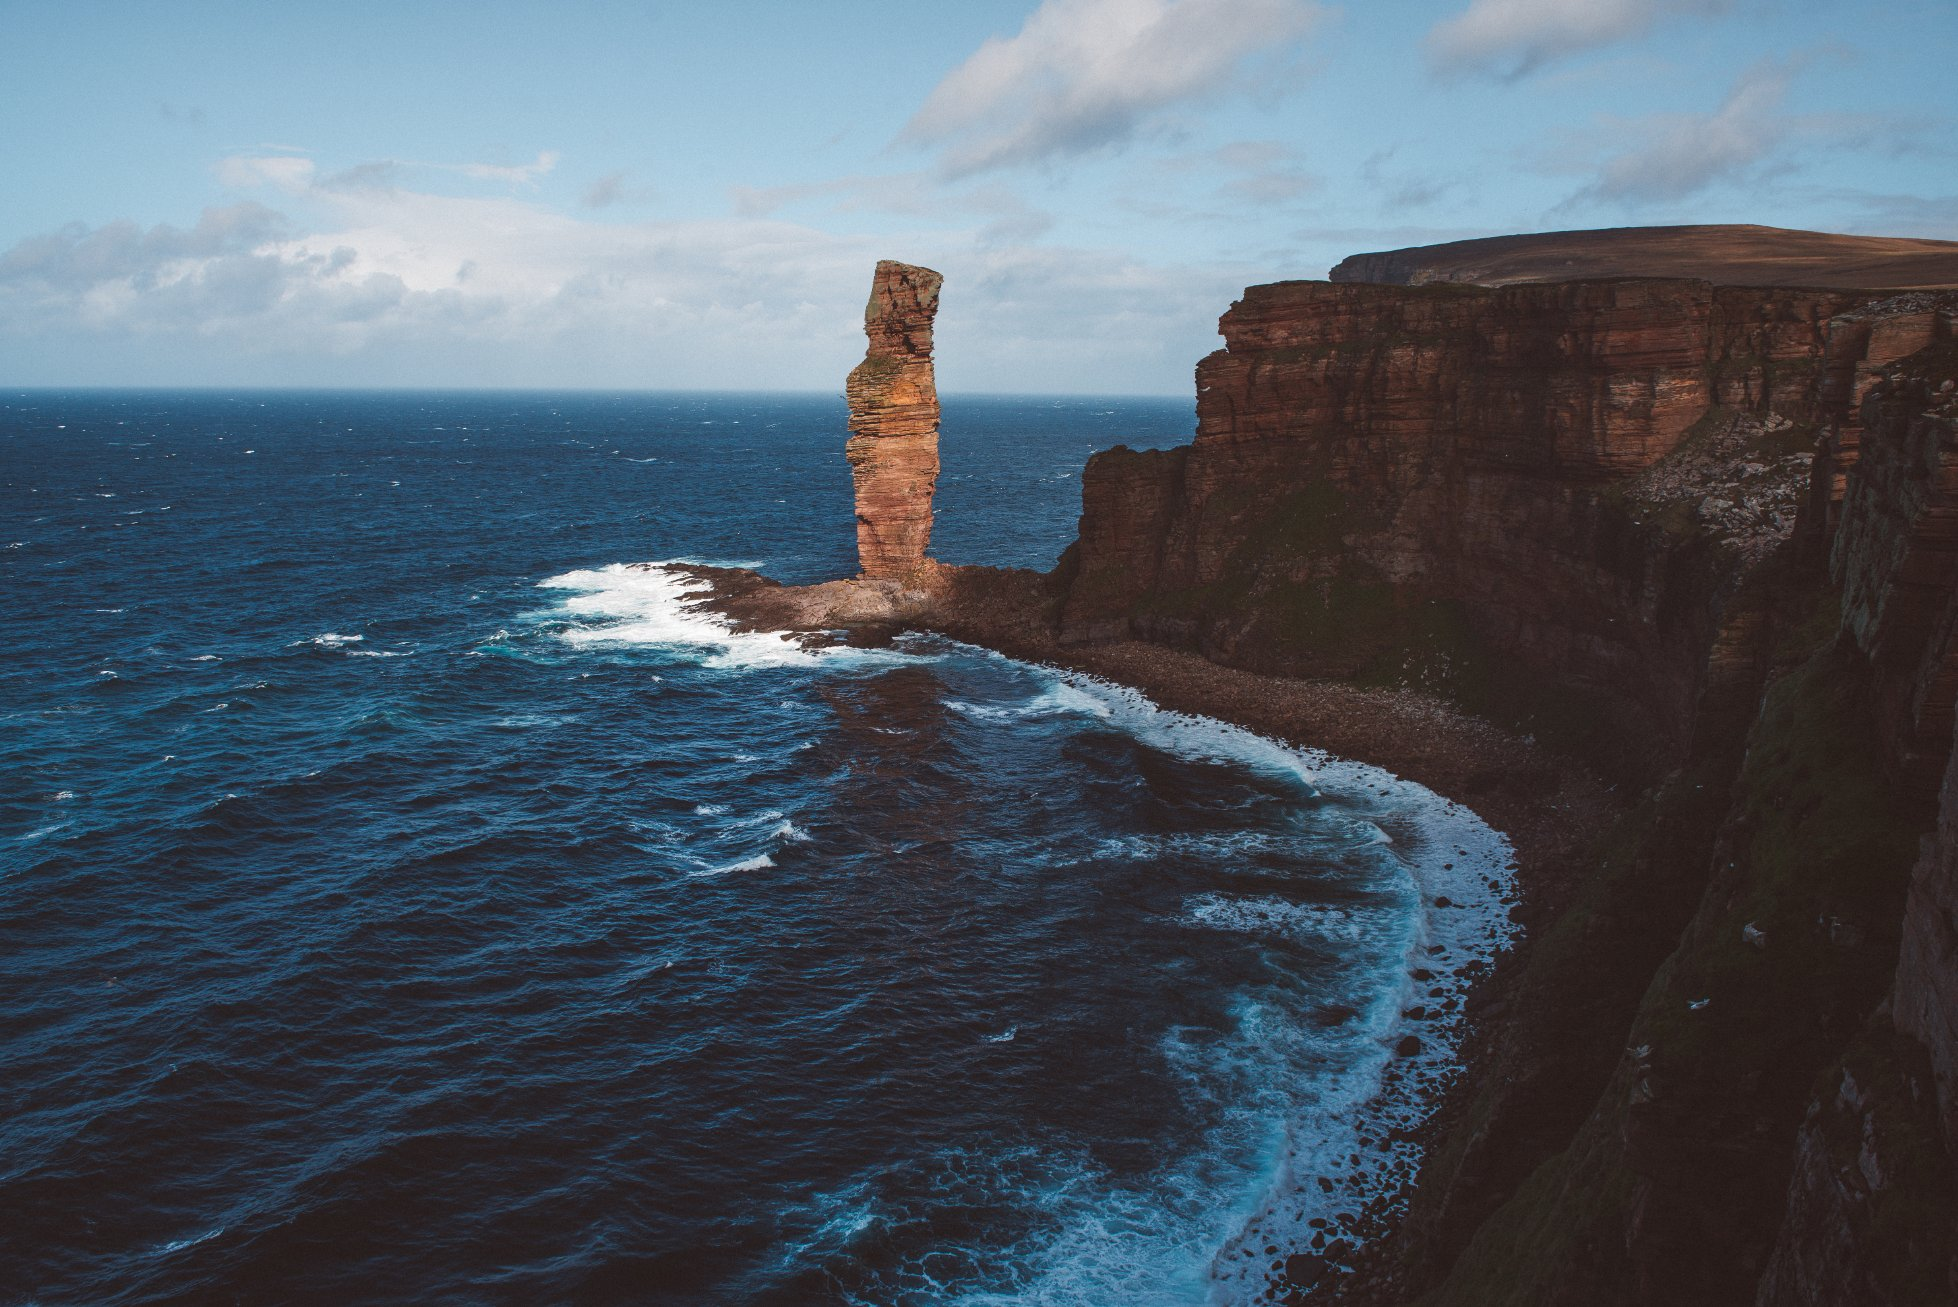 The Old Man of Hoy, Orkney - image by Alistair Horne